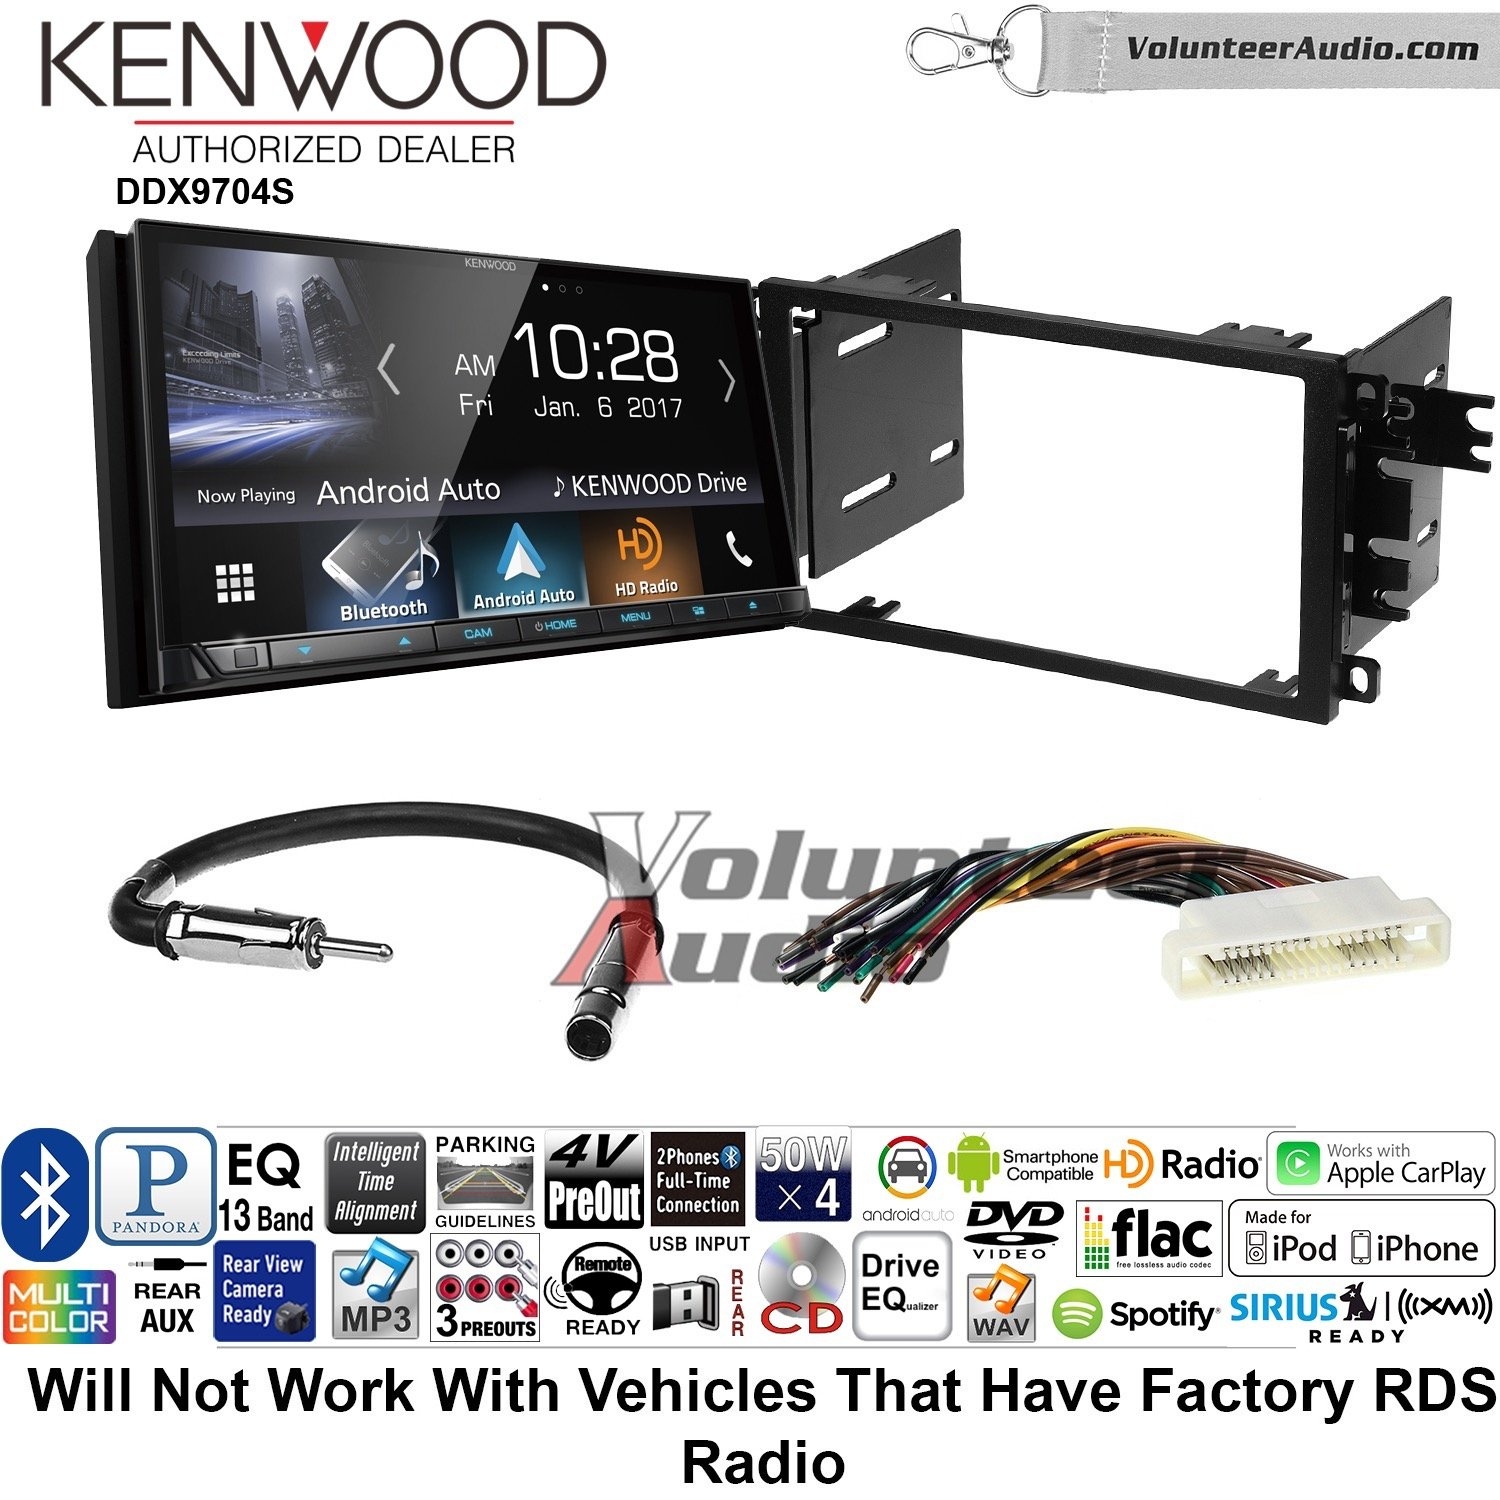 ボランティアオーディオKenwood ddx9704sダブルDINラジオインストールキットwith Apple CarPlay Android自動Fits 2000 – 2005 Buick LeSabre、2000 – 2005 Pontiac Bonneville ( without BOSE ) B07BZXW4VB